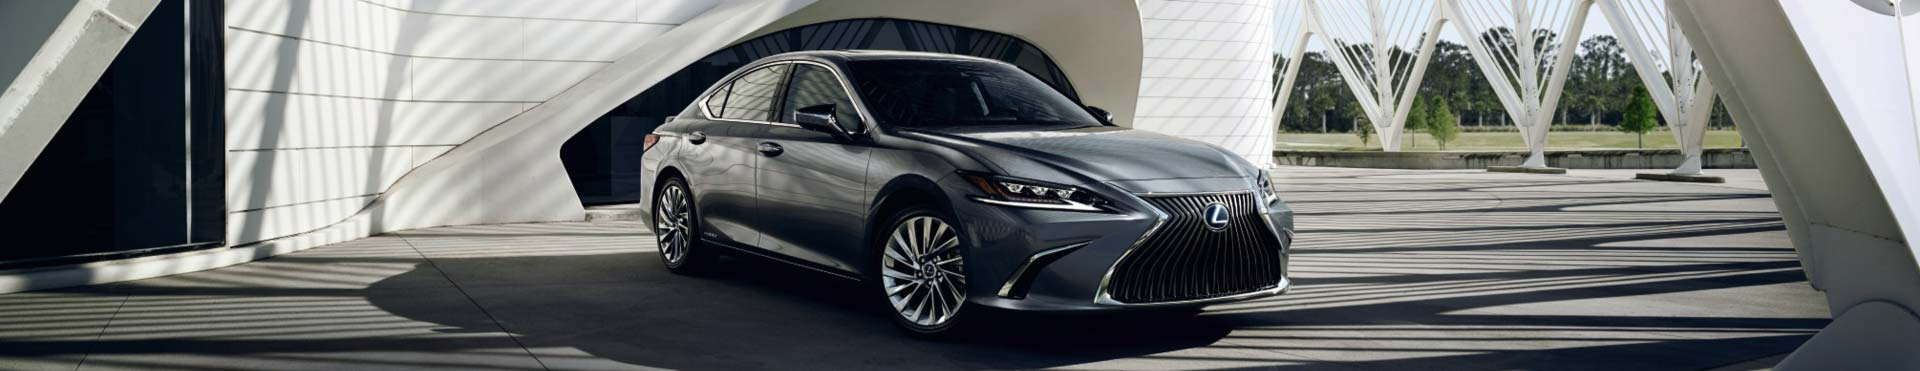 All-New 2021 Lexus ES 250 AWD Standout Features